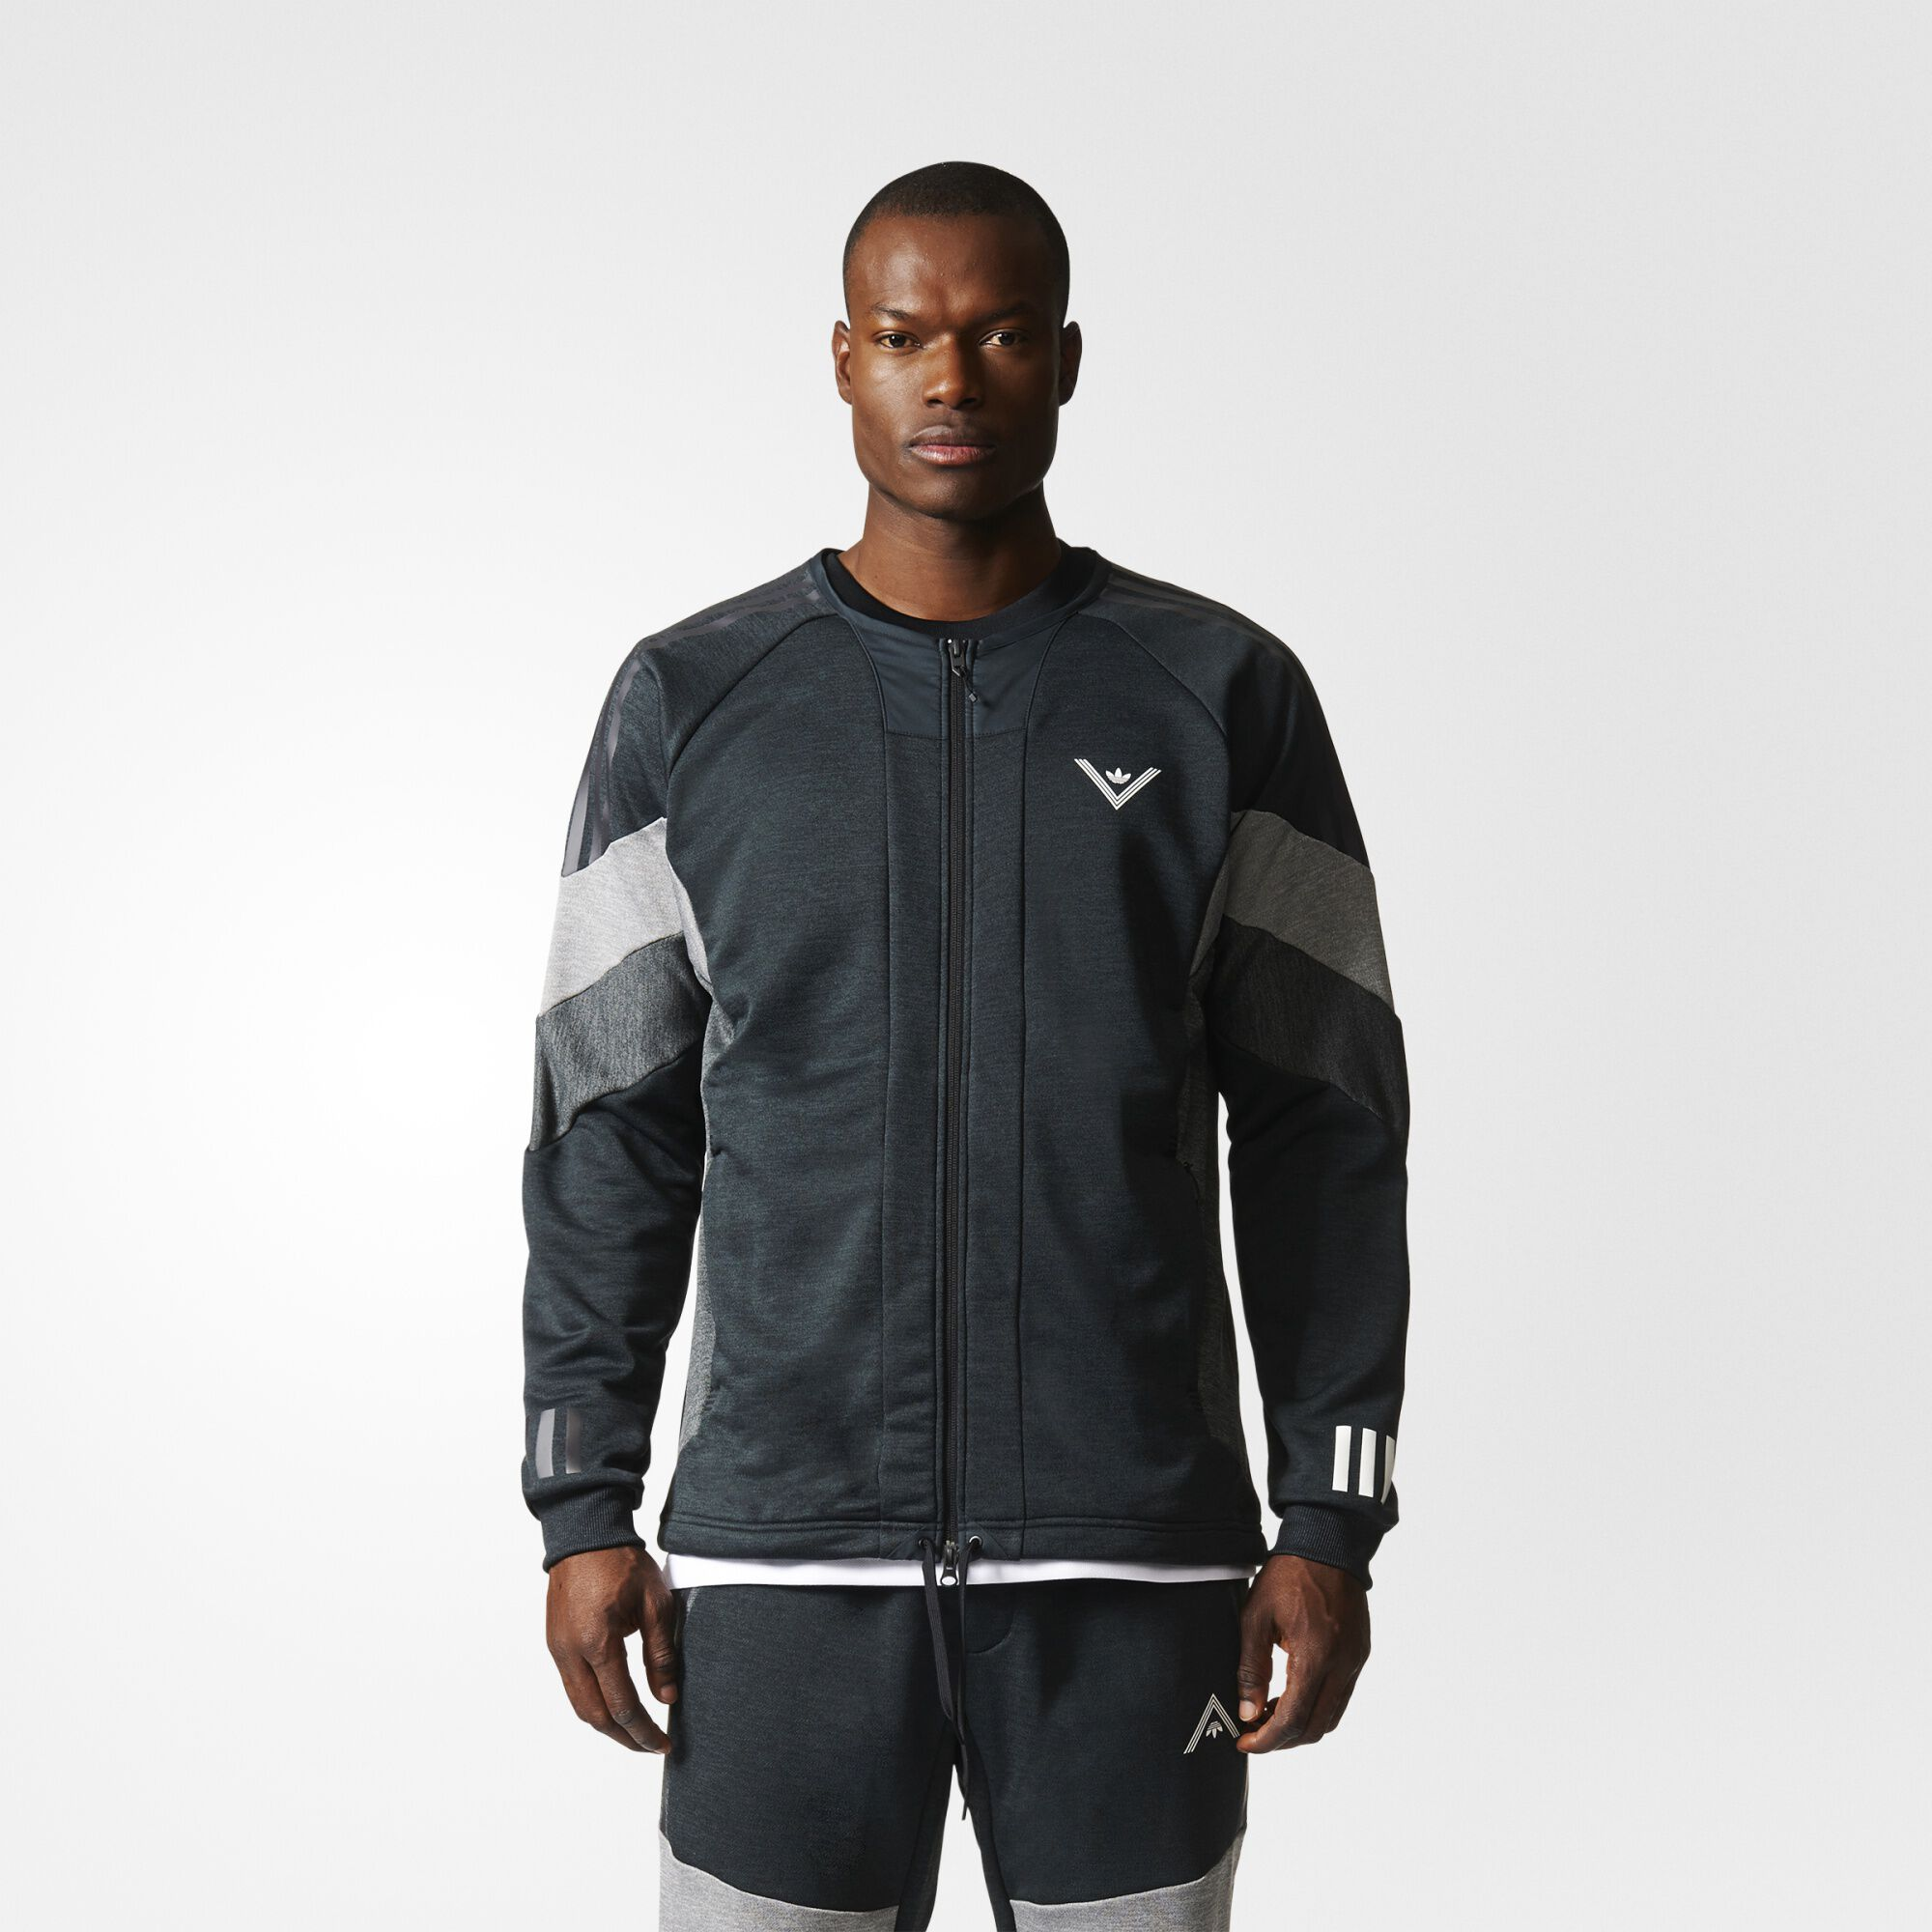 Adidas jacket